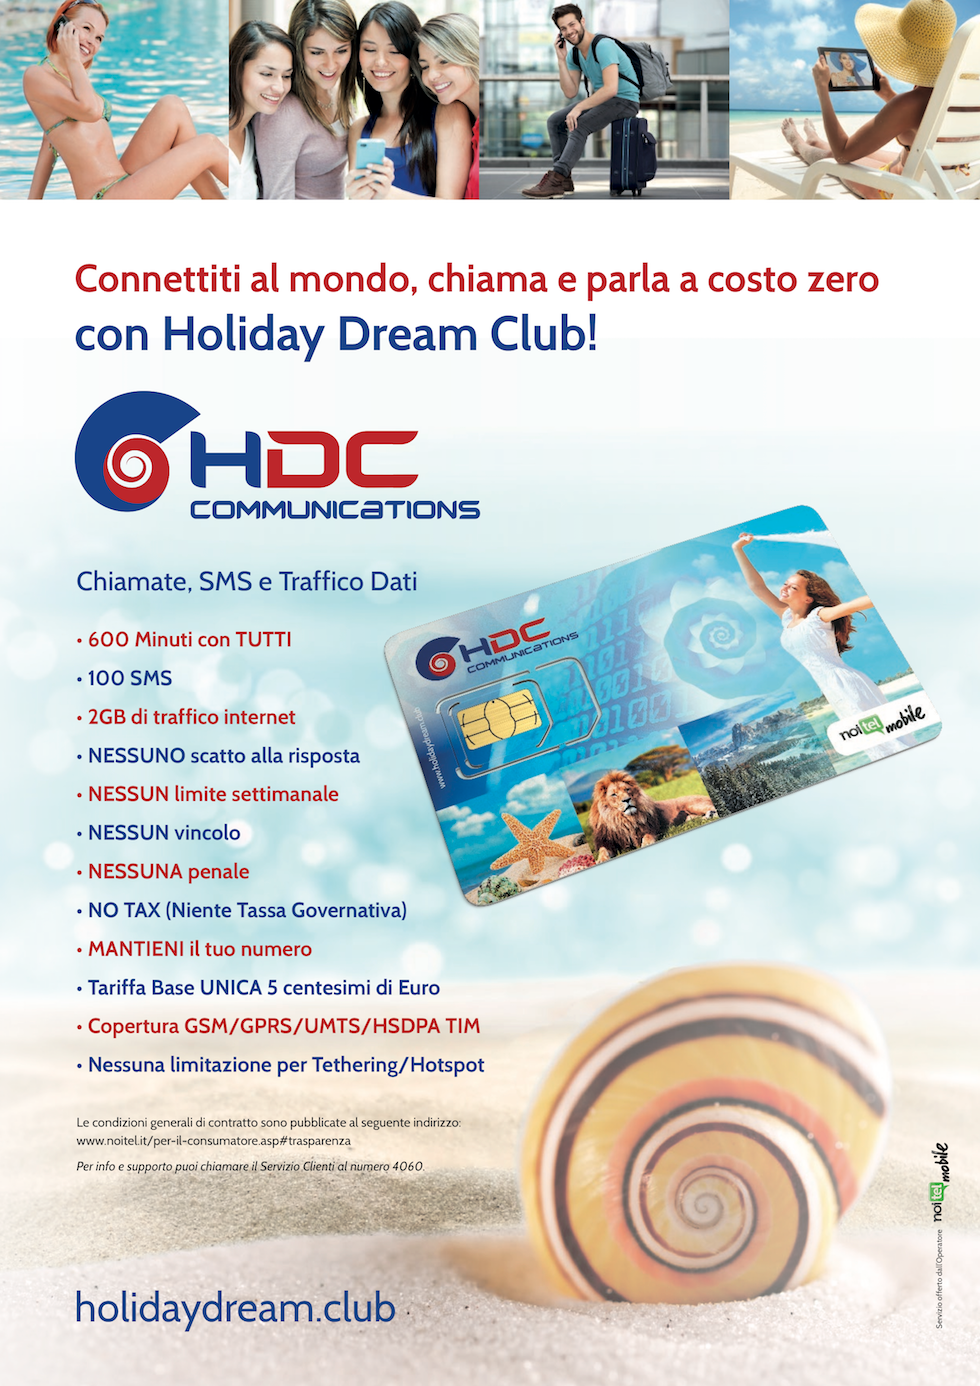 HDC Communications